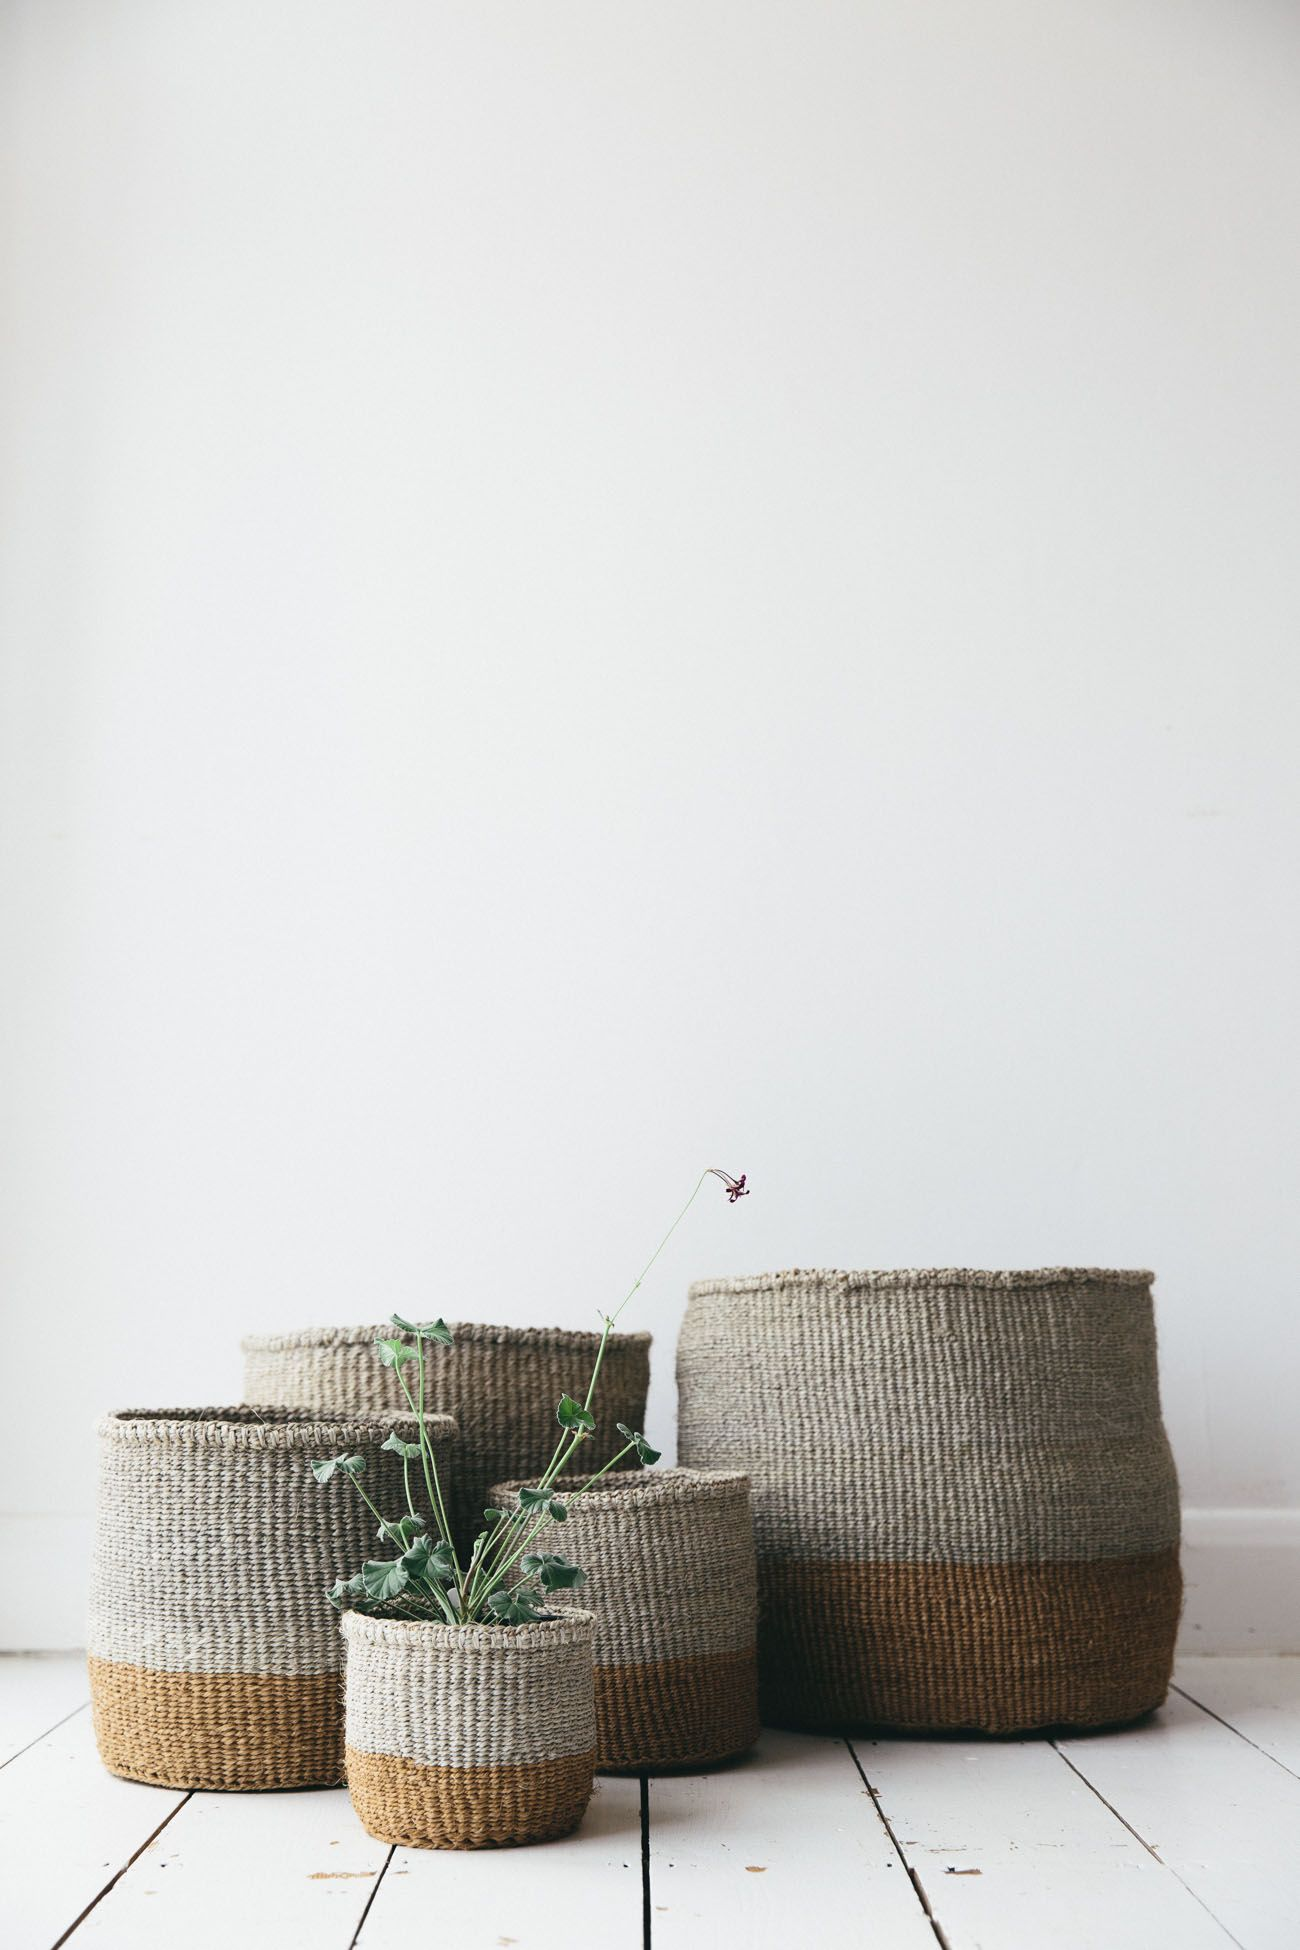 African Woven Hamper Stunning African Natural Sisal Woven Baskets Handwoven By